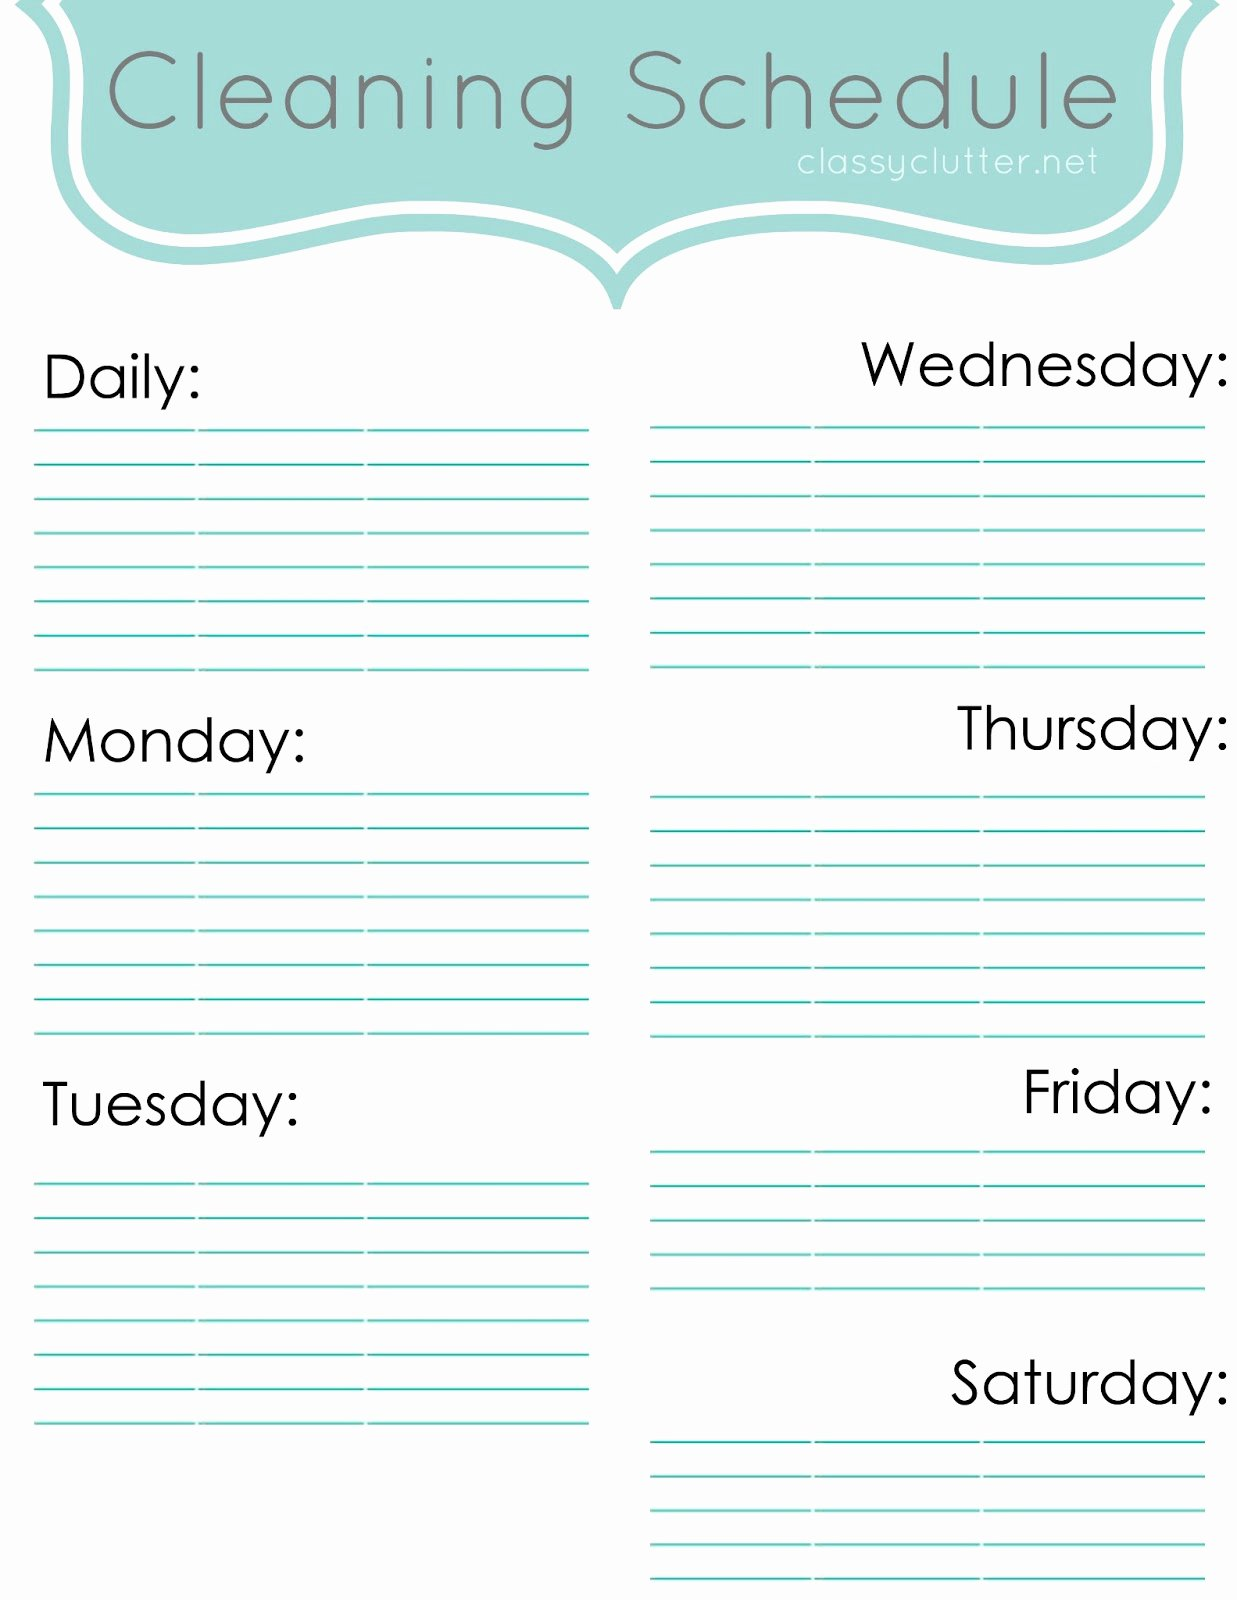 Monthly Cleaning Schedule Template Beautiful Weekly Cleaning Schedule Improve Your Cleaning Habits